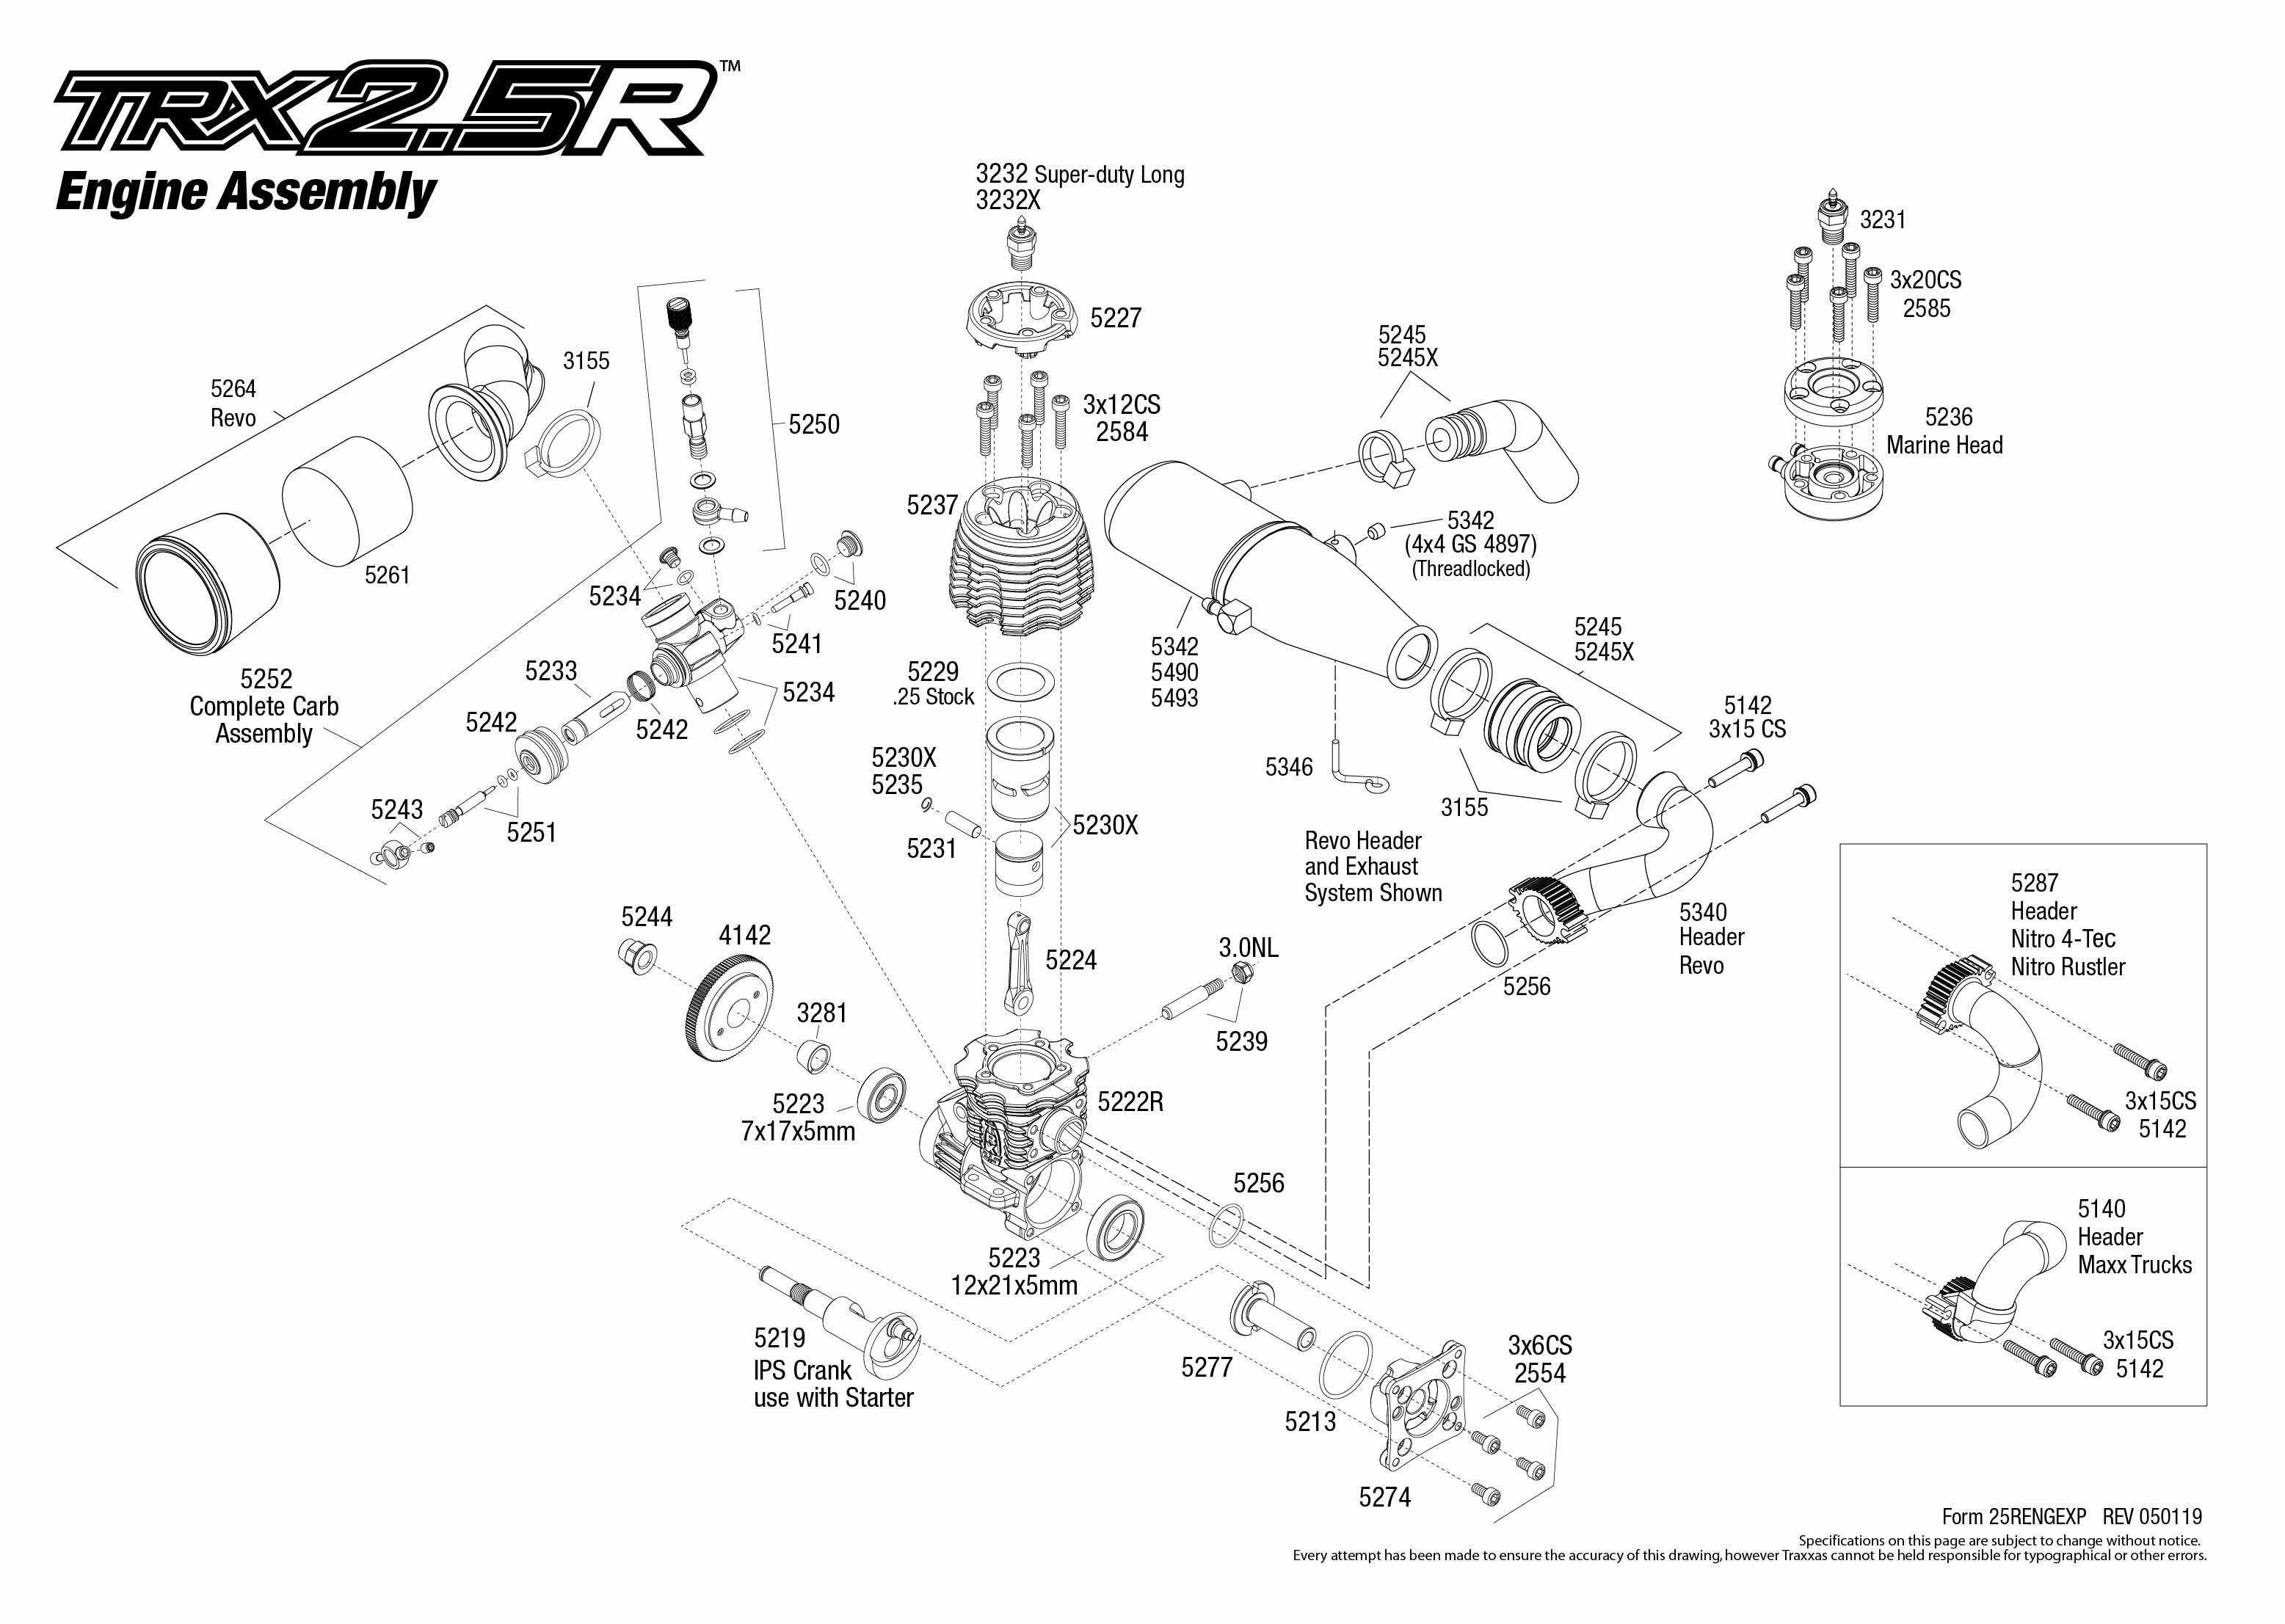 [CSDW_4250]   TRX 2.5R (5207R) Engine Assembly | Traxxas | Traxxas 2 5 Engine Diagram |  | Traxxas